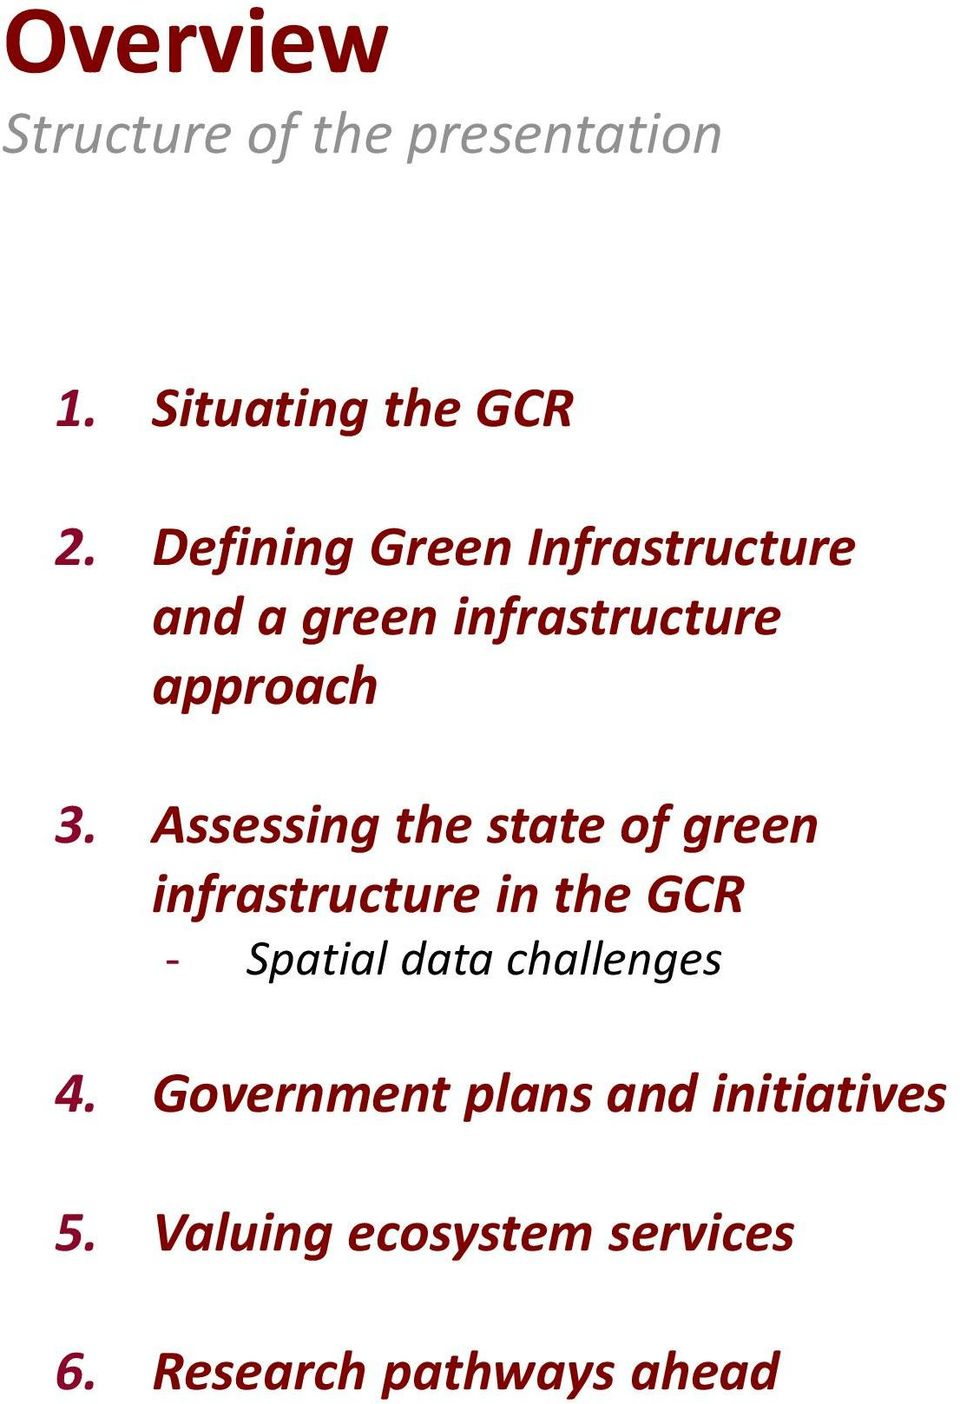 Assessing the state of green infrastructure in the GCR - Spatial data